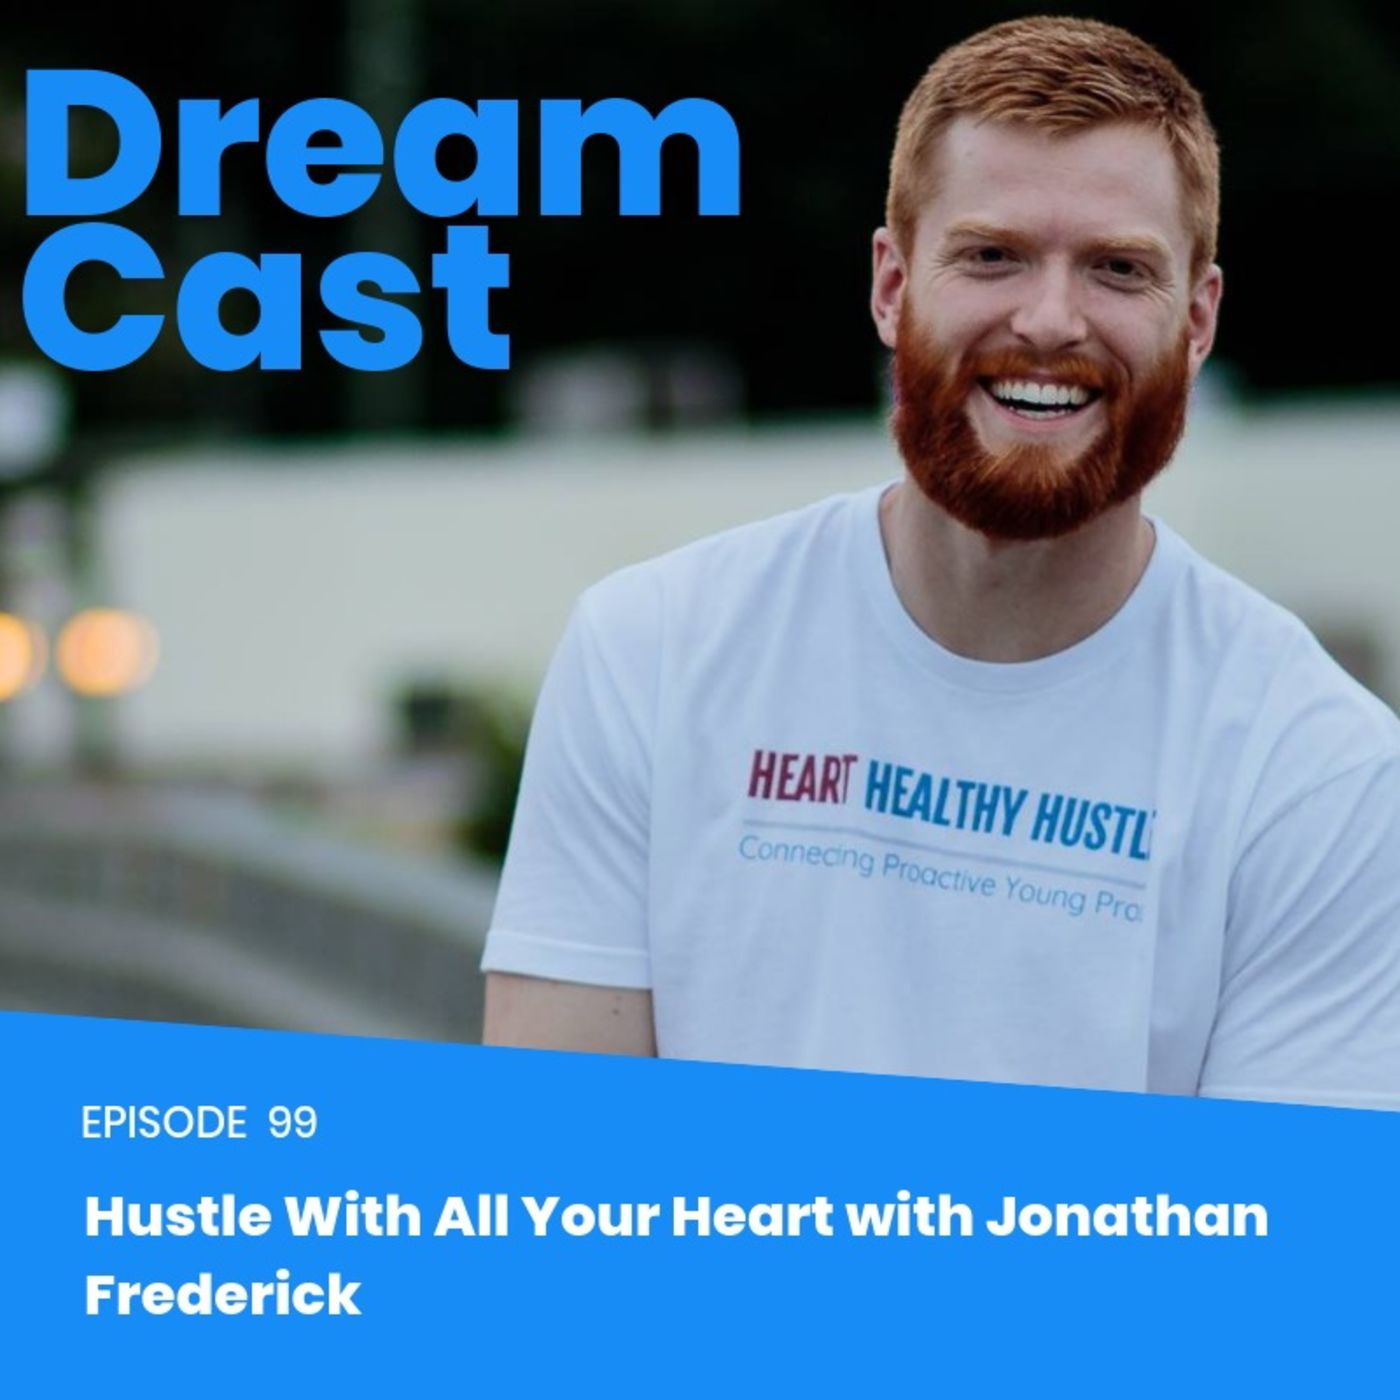 Episode 99 - Hustle with all your Heart with Jonathan Frederick